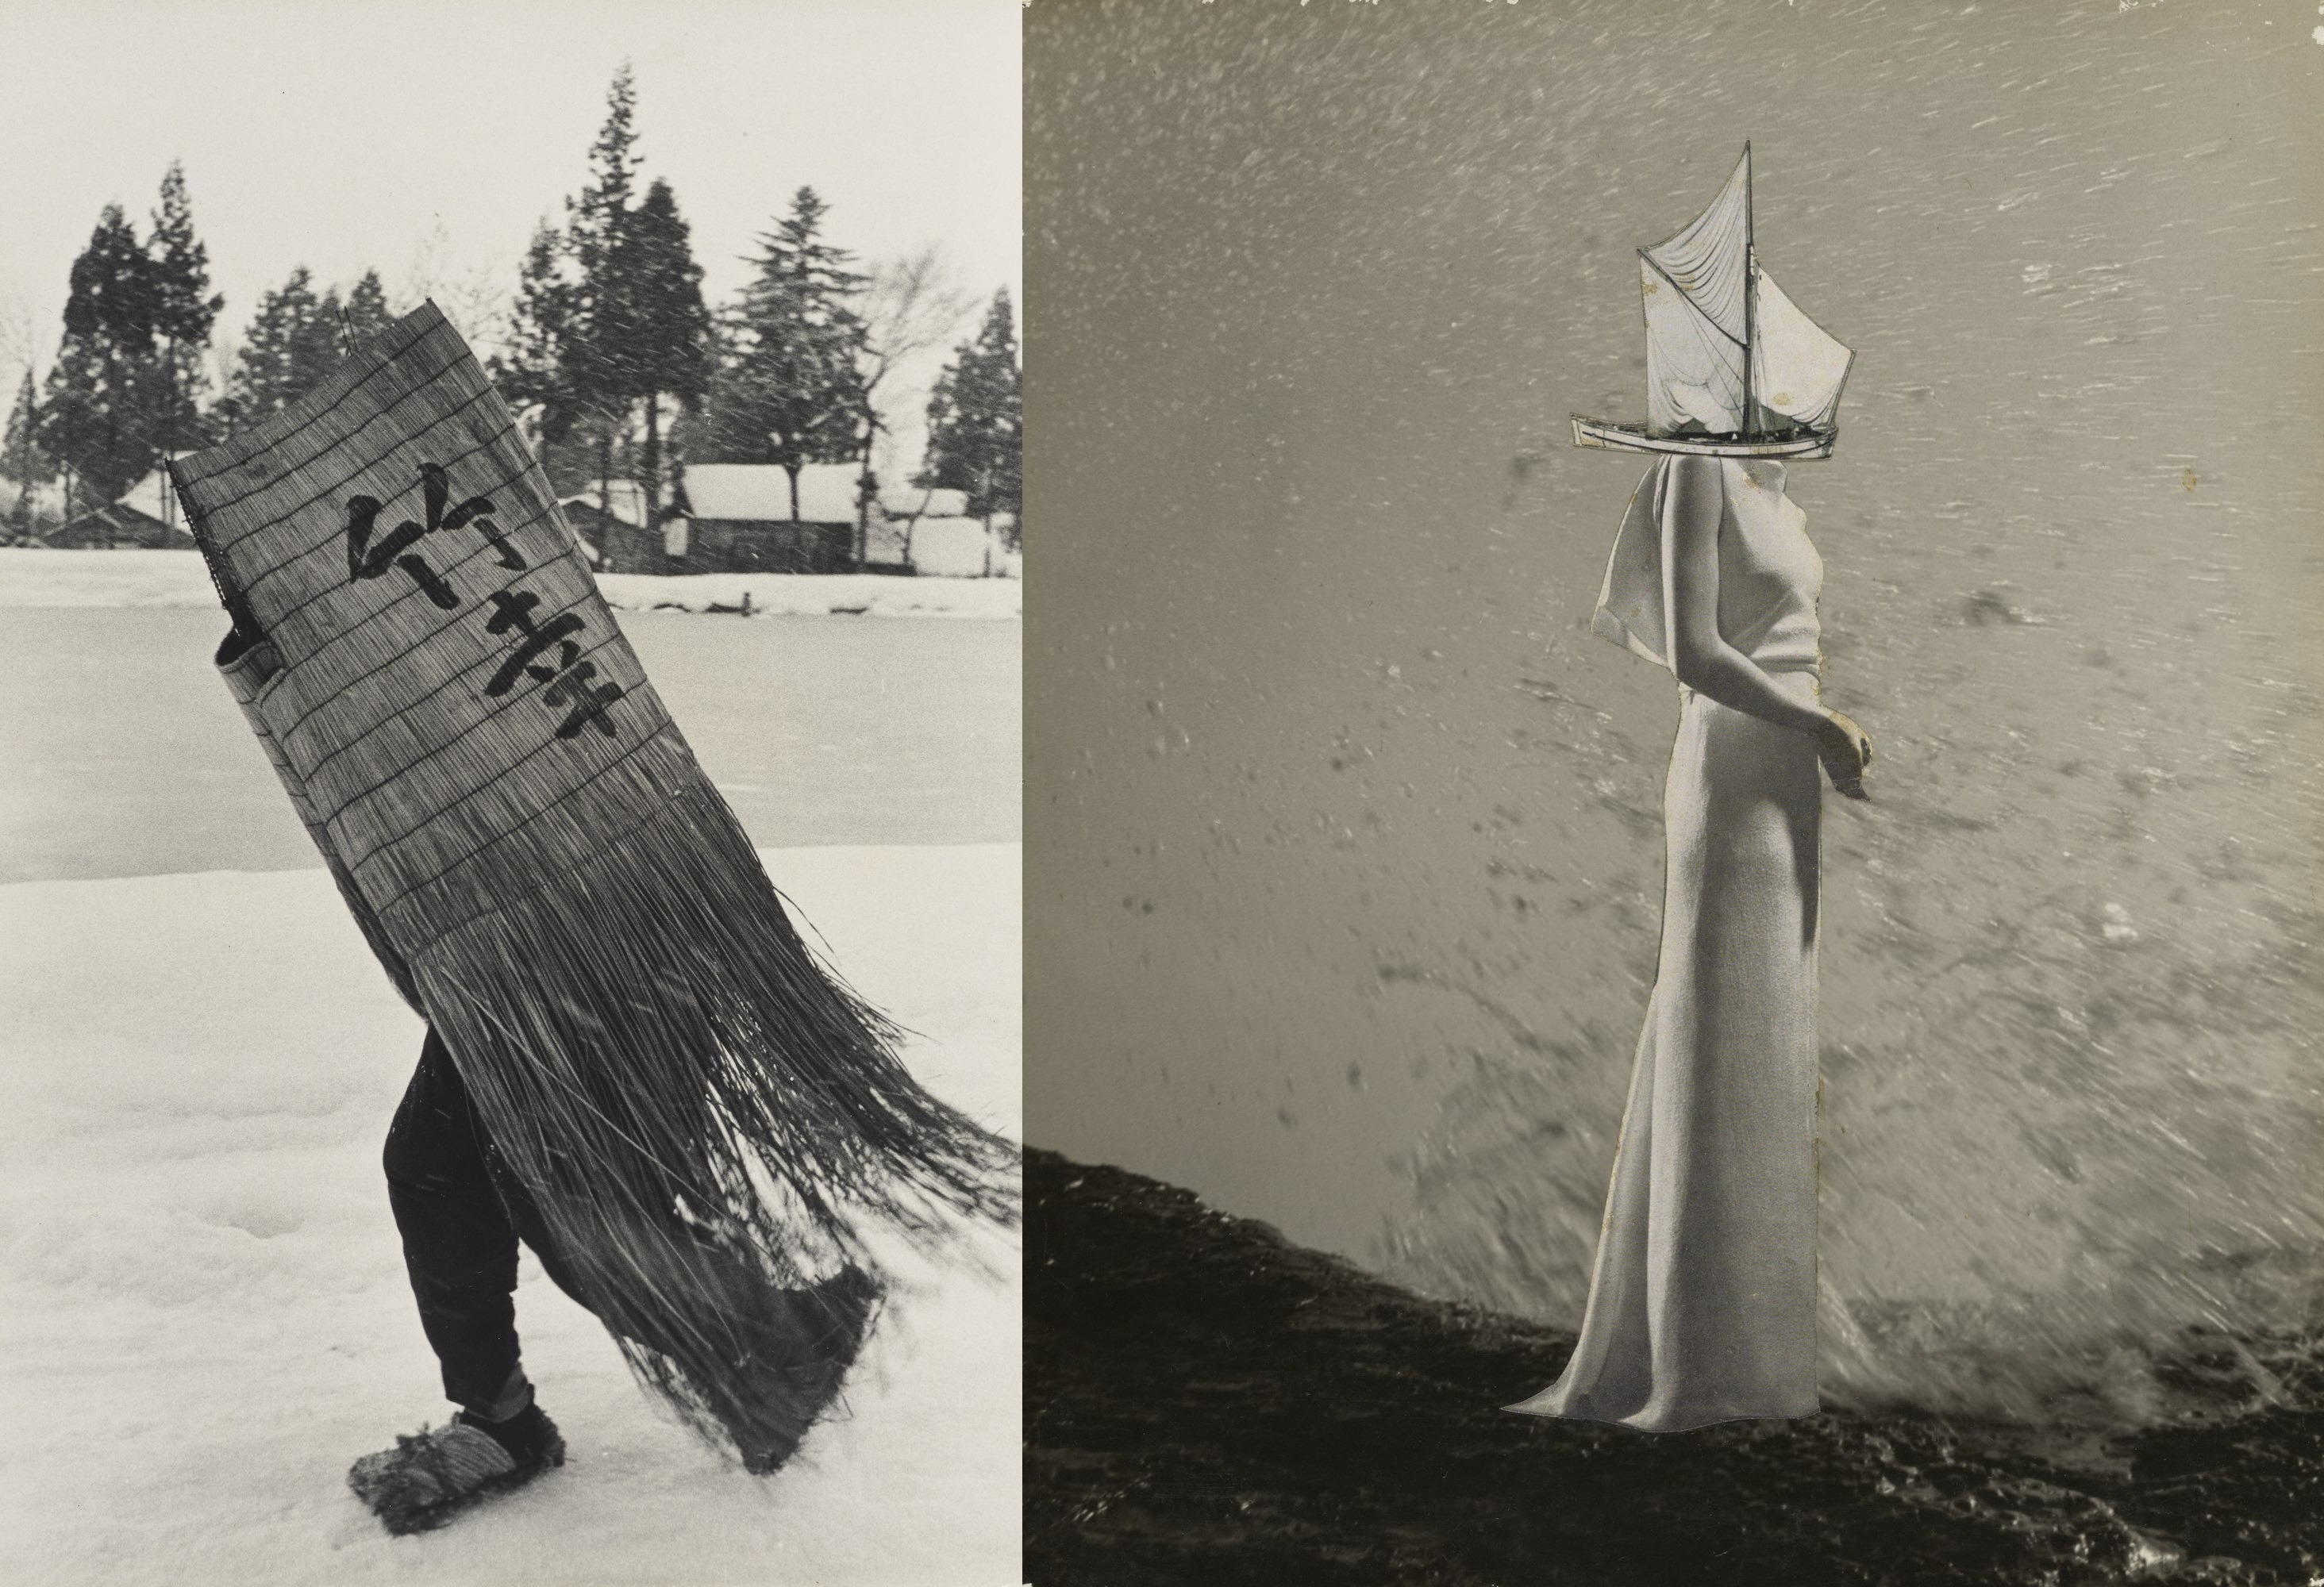 "(Left: ""Man in a Traditional Minoboshi Raincoat, Niigata Prefecture"" (1956) by Hiroshi Hamaya, gelatin silver print, © Keisuke Katano The J. Paul Getty Museum, Los Angeles/ Right: ""A Chronicle of Drifting"" (1949) by Kansuke Yamamoto, collage, © Toshio Yamamoto Private collection, entrusted to Tokyo Metropolitan Museum of Photography)"